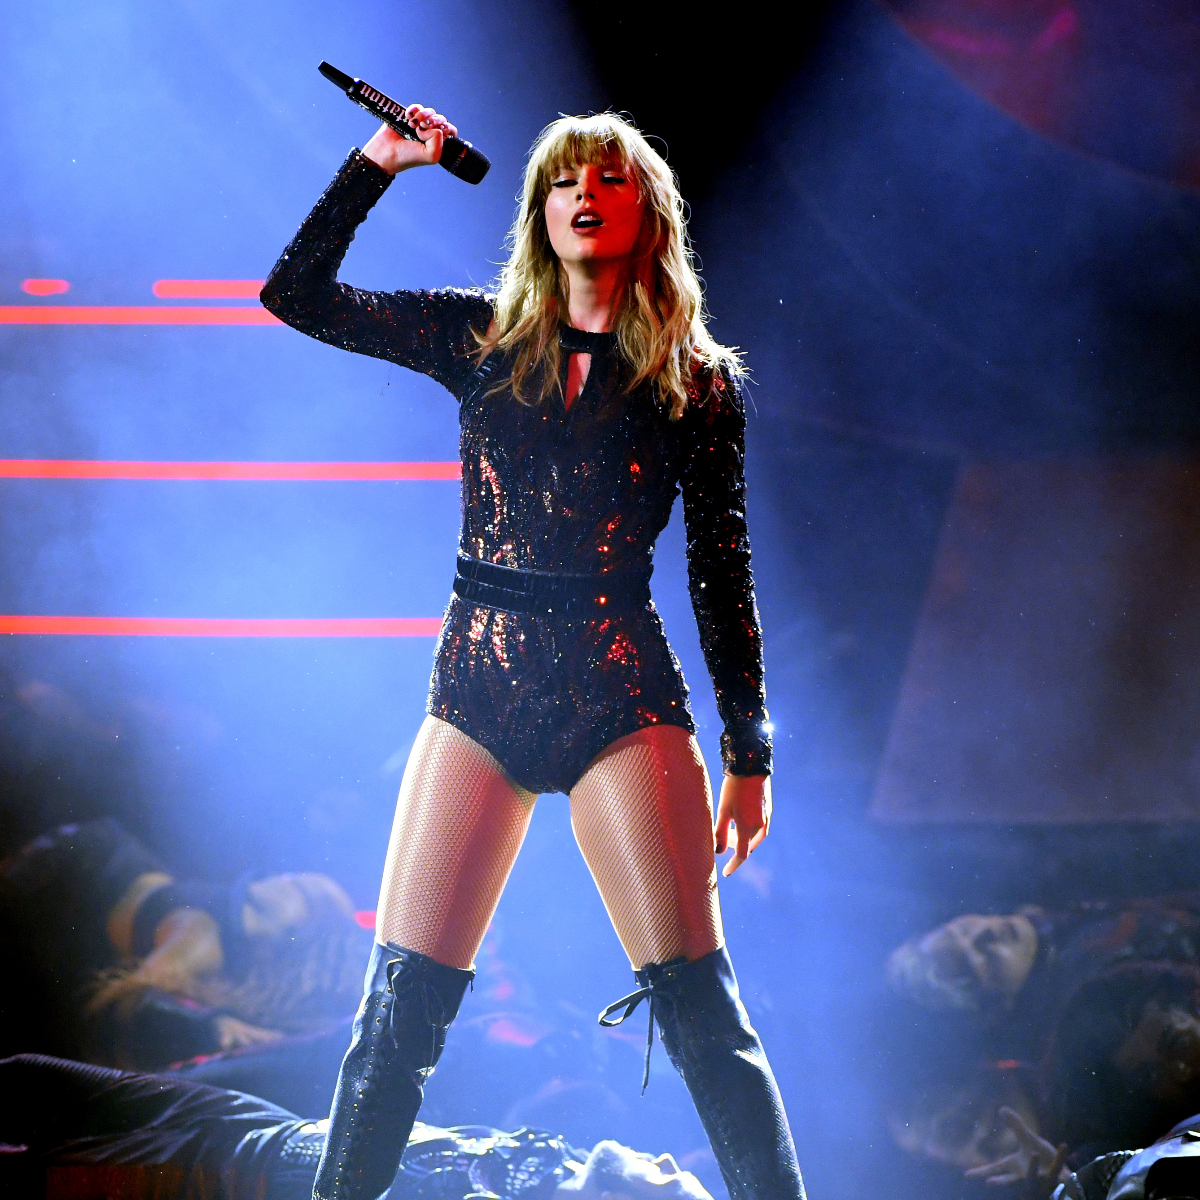 Taylor Swift feels THIS question has the potential to deteriorate her mental health condition